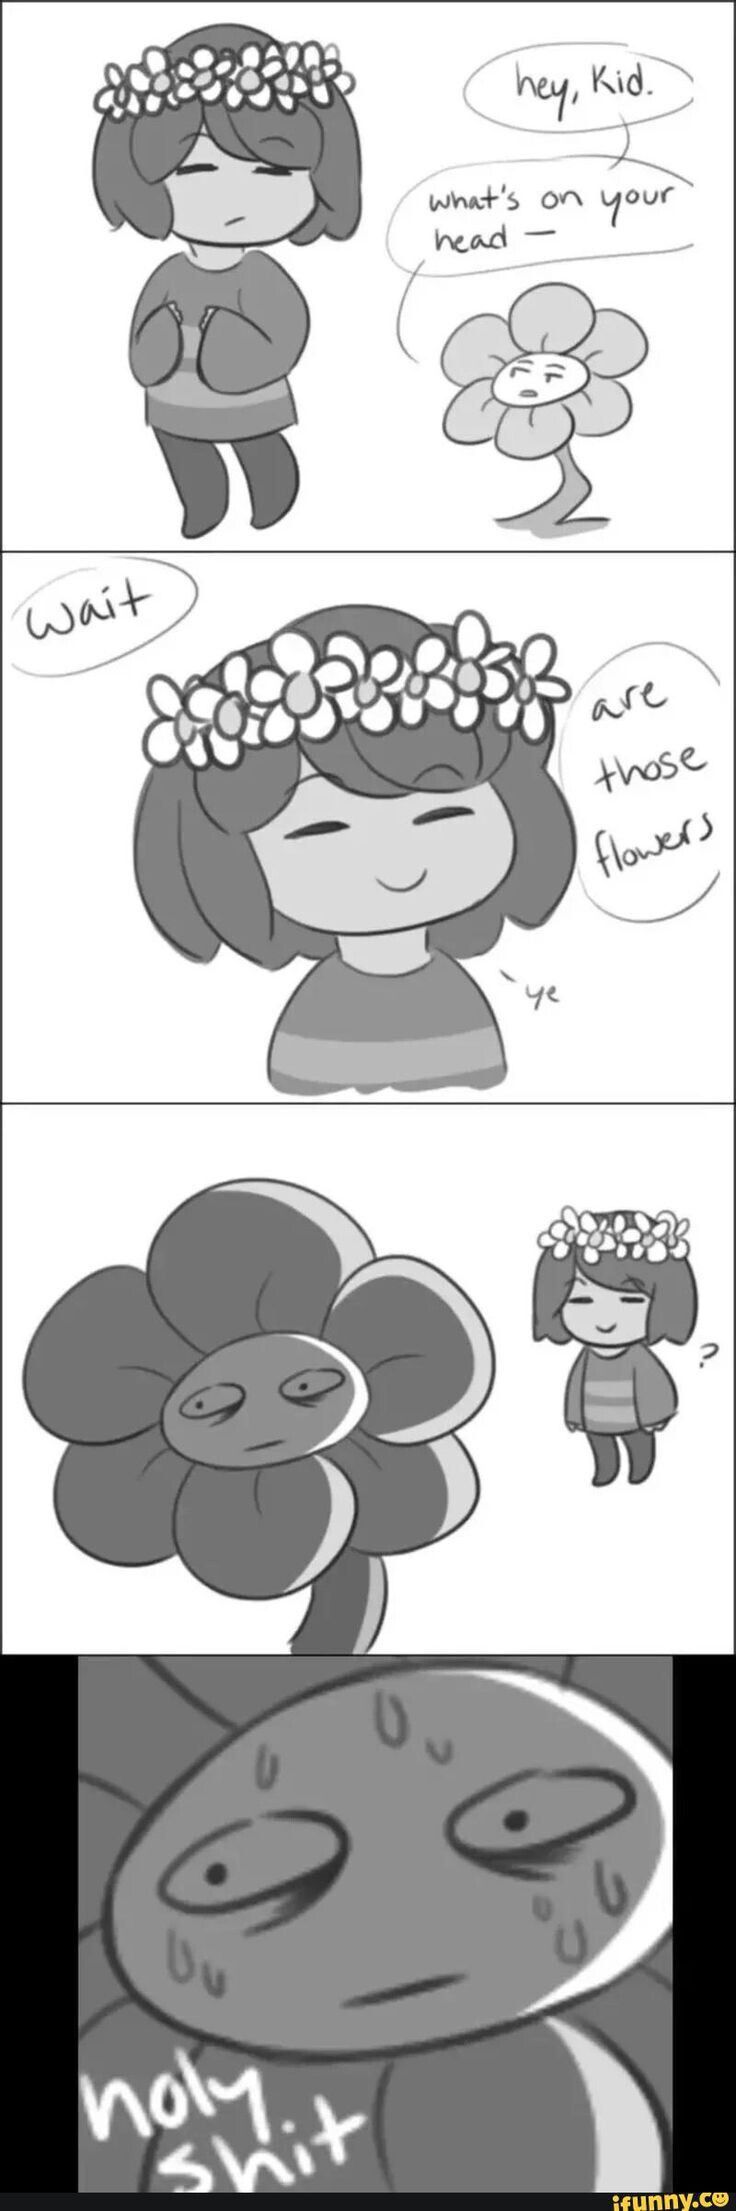 Flowey has been scarred for life lmao